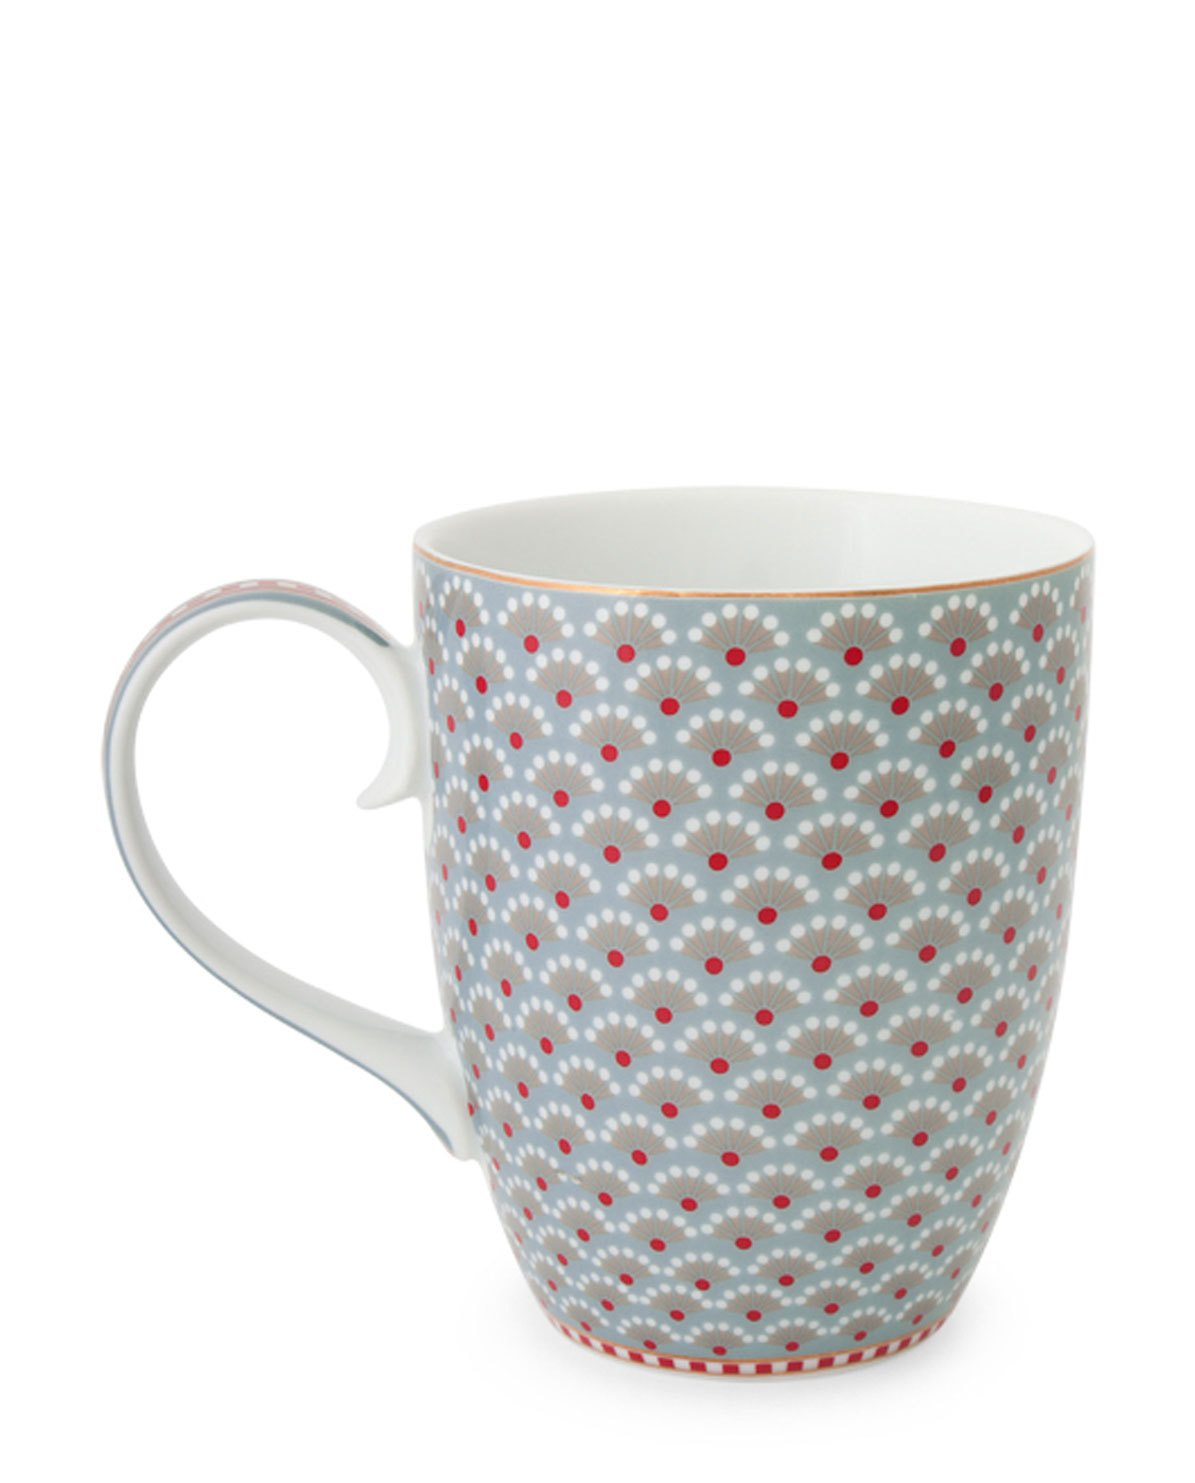 PiP Studio Mug large Bloomingtales Blue | large